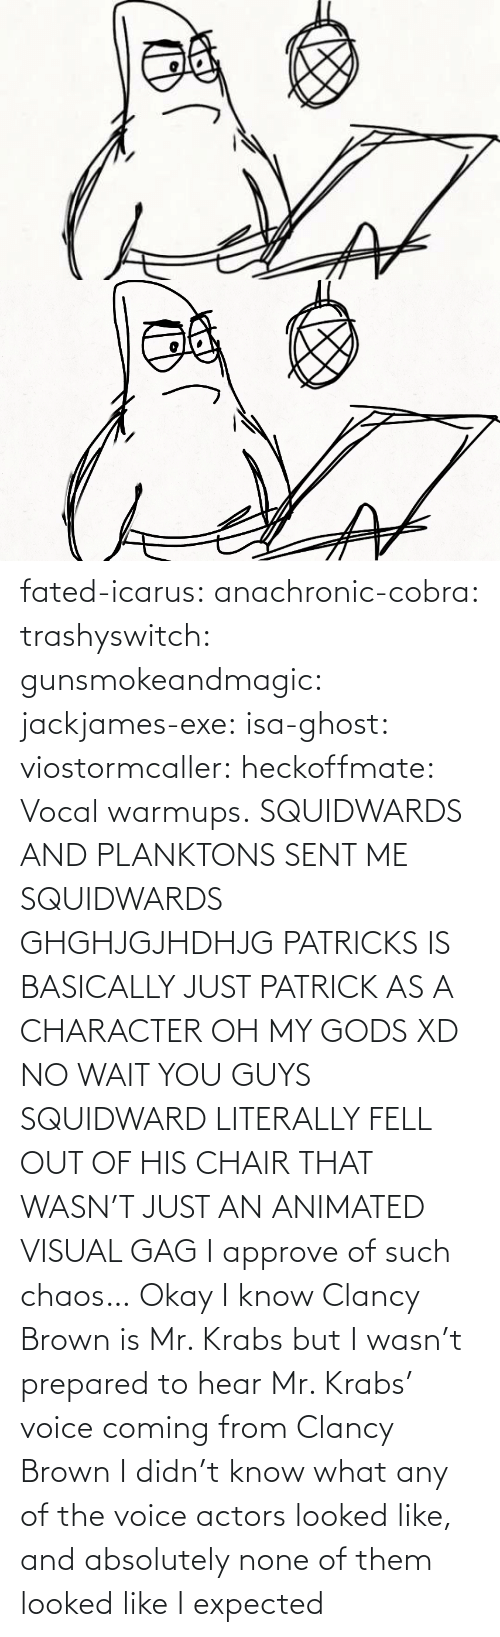 Okay: fated-icarus:  anachronic-cobra: trashyswitch:  gunsmokeandmagic:  jackjames-exe:  isa-ghost:   viostormcaller:  heckoffmate: Vocal warmups. SQUIDWARDS AND PLANKTONS SENT ME  SQUIDWARDS GHGHJGJHDHJG   PATRICKS IS BASICALLY JUST PATRICK AS A CHARACTER OH MY GODS XD   NO WAIT YOU GUYS SQUIDWARD LITERALLY FELL OUT OF HIS CHAIR THAT WASN'T JUST AN ANIMATED VISUAL GAG    I approve of such chaos…    Okay I know Clancy Brown is Mr. Krabs but I wasn't prepared to hear Mr. Krabs' voice coming from Clancy Brown    I didn't know what any of the voice actors looked like, and absolutely none of them looked like I expected